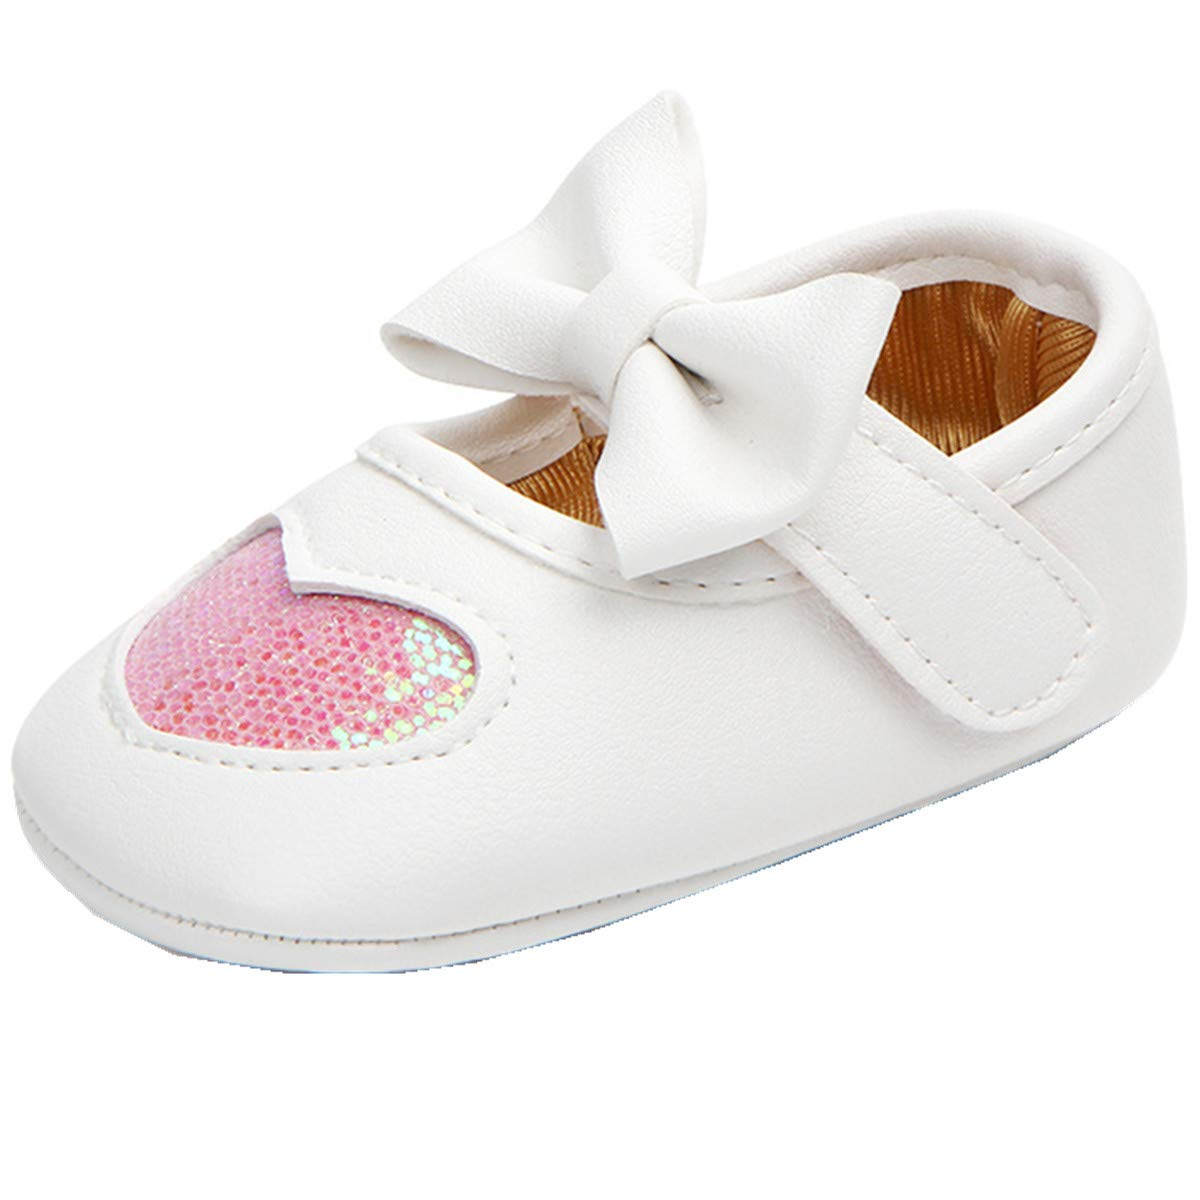 Infants Shoes,Newborn Shoes for Baby Girl Boy,Spring//Fall Baby Shoes Flower ADIASEN Baby Unisex Baby Shoes,Soft Non-Slip Toddler Shoes